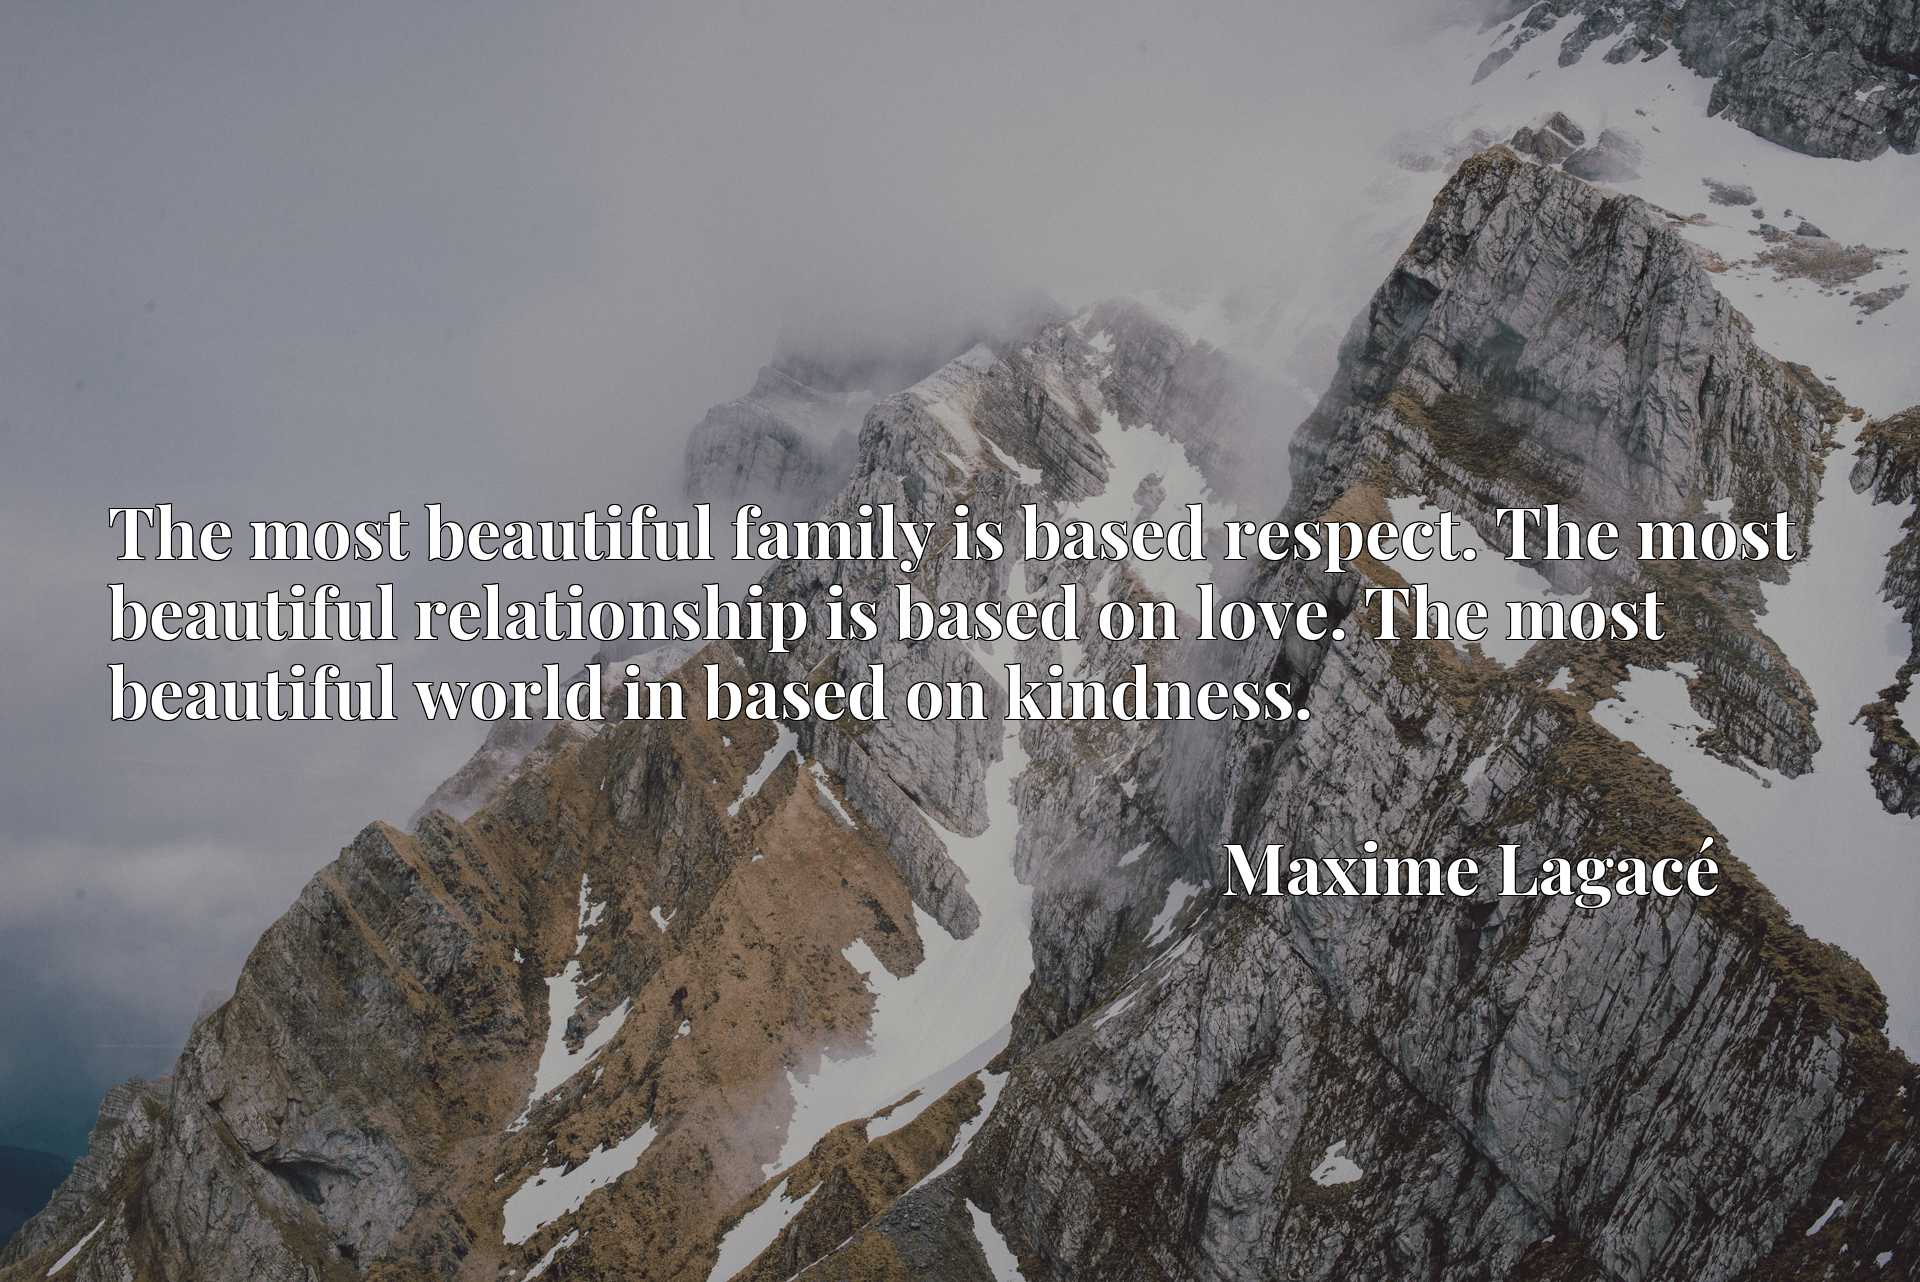 The most beautiful family is based respect. The most beautiful relationship is based on love. The most beautiful world in based on kindness.